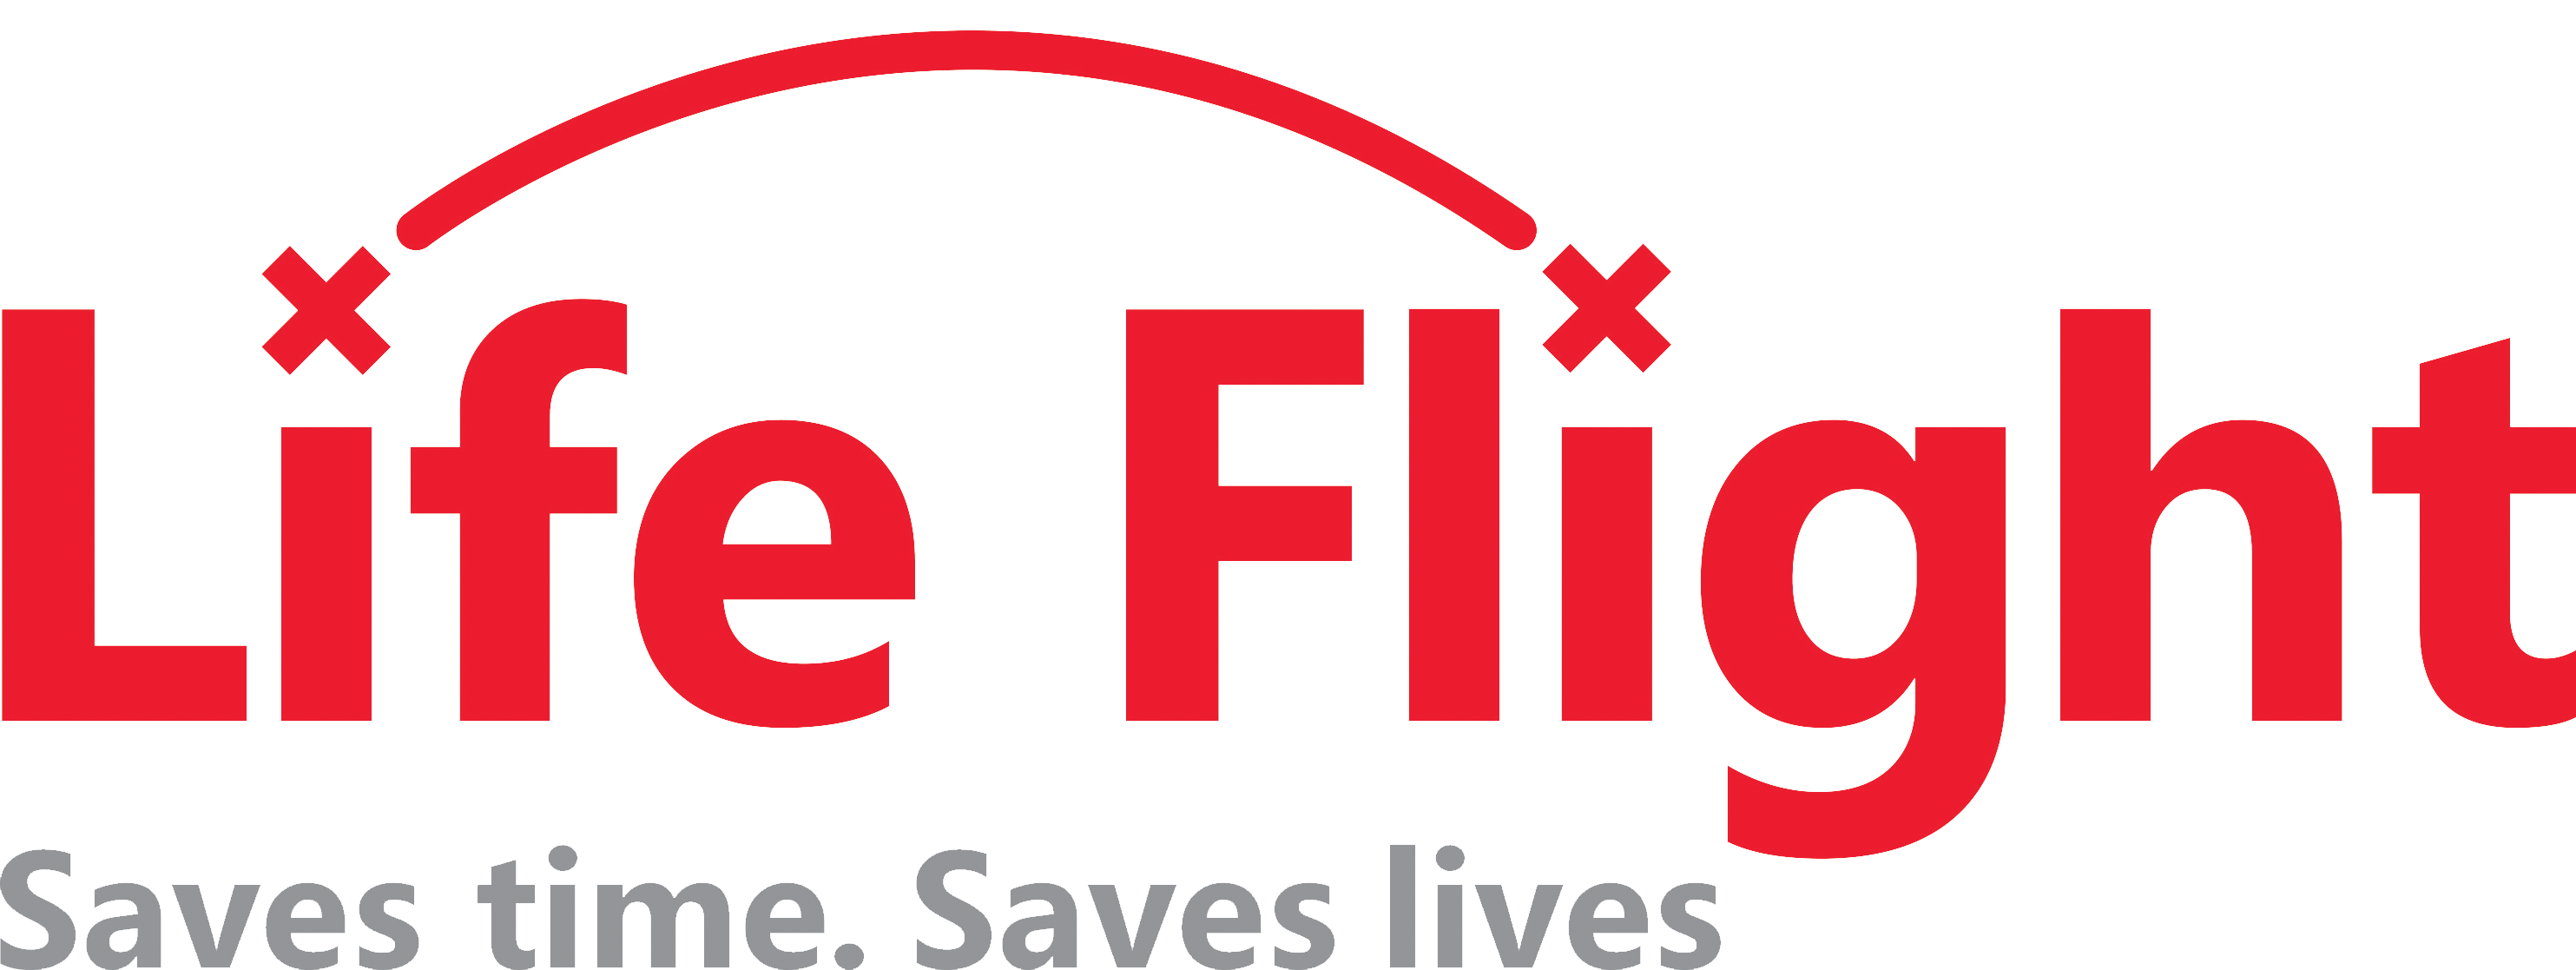 LIFE FLIGHT 2015 Wellington cymk